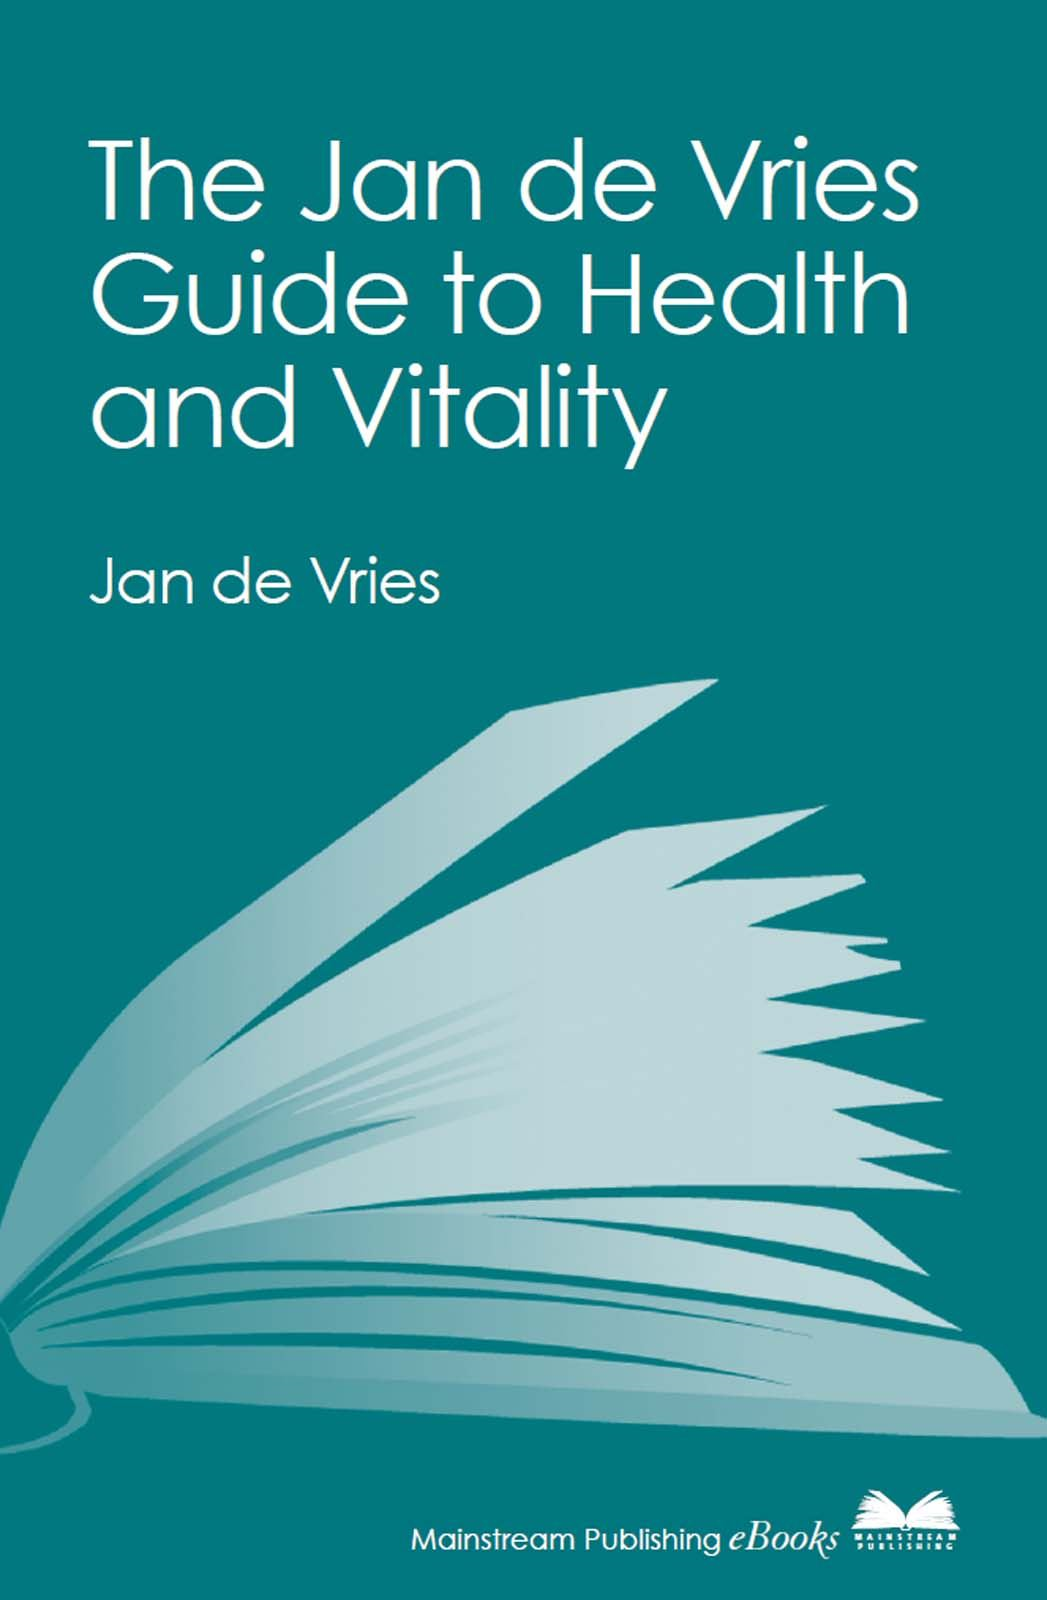 The Jan de Vries Guide to Health and Vitality